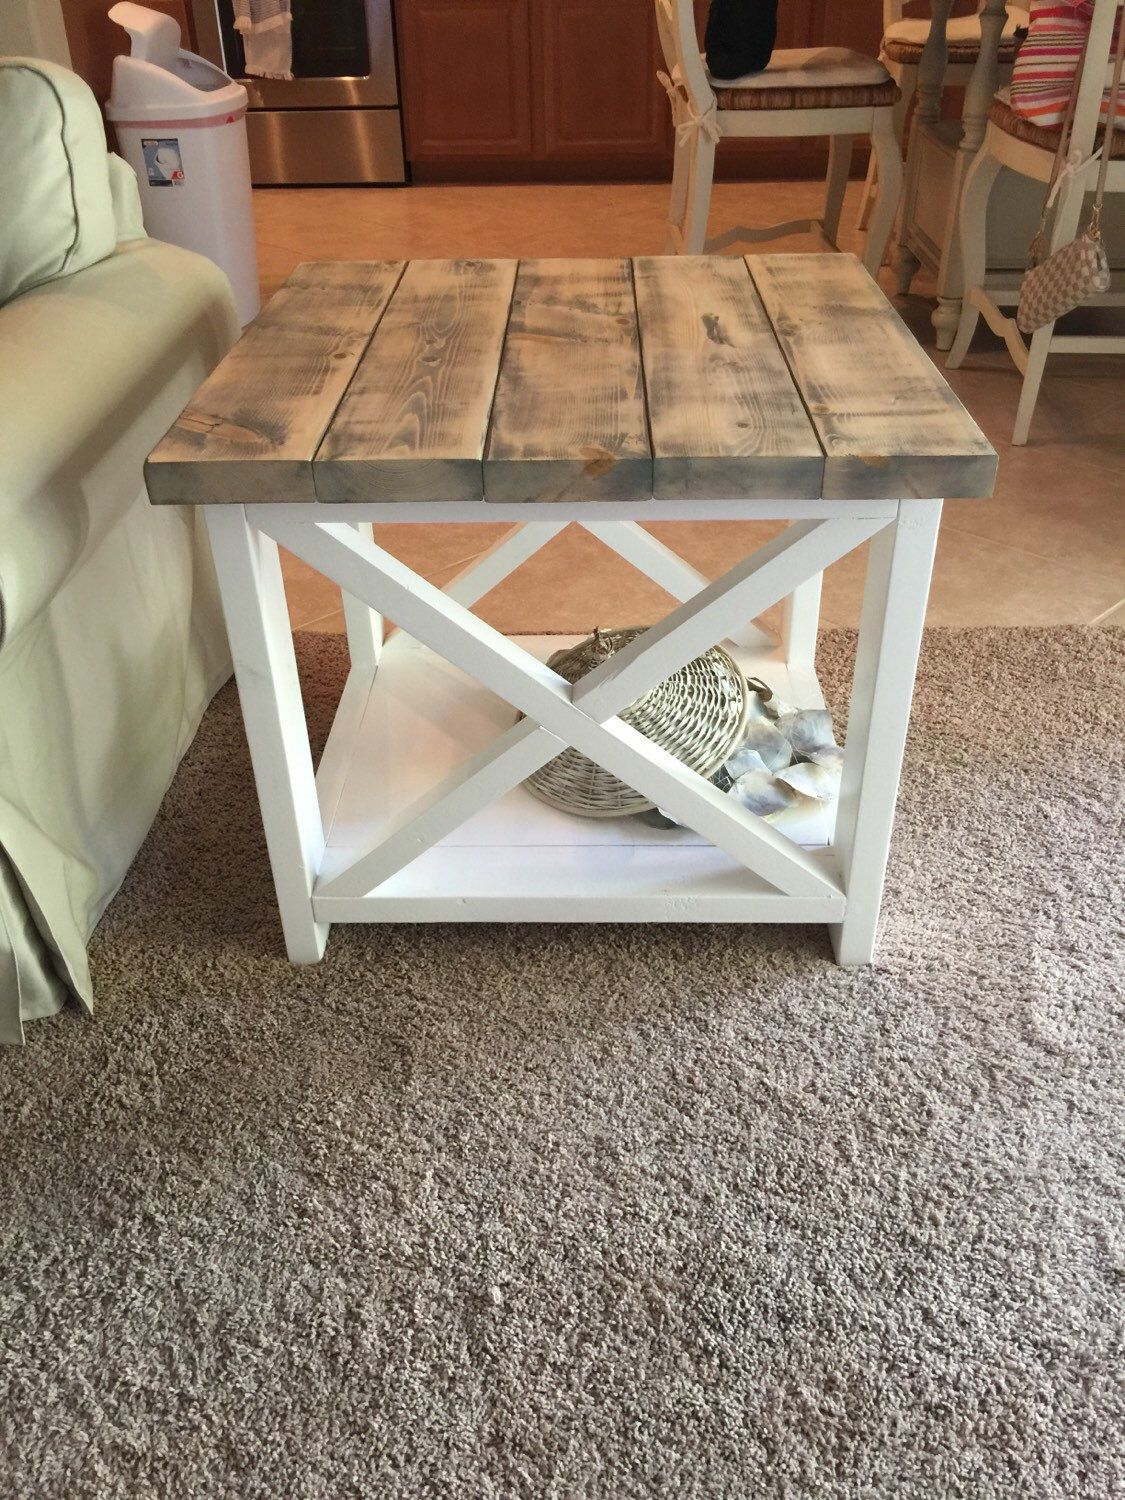 custom rustic farmhouse end table places think yes style accent thewoodmarket etsy desk combo pottery barn white side ikea wall clothes storage mosaic garden bench home goods